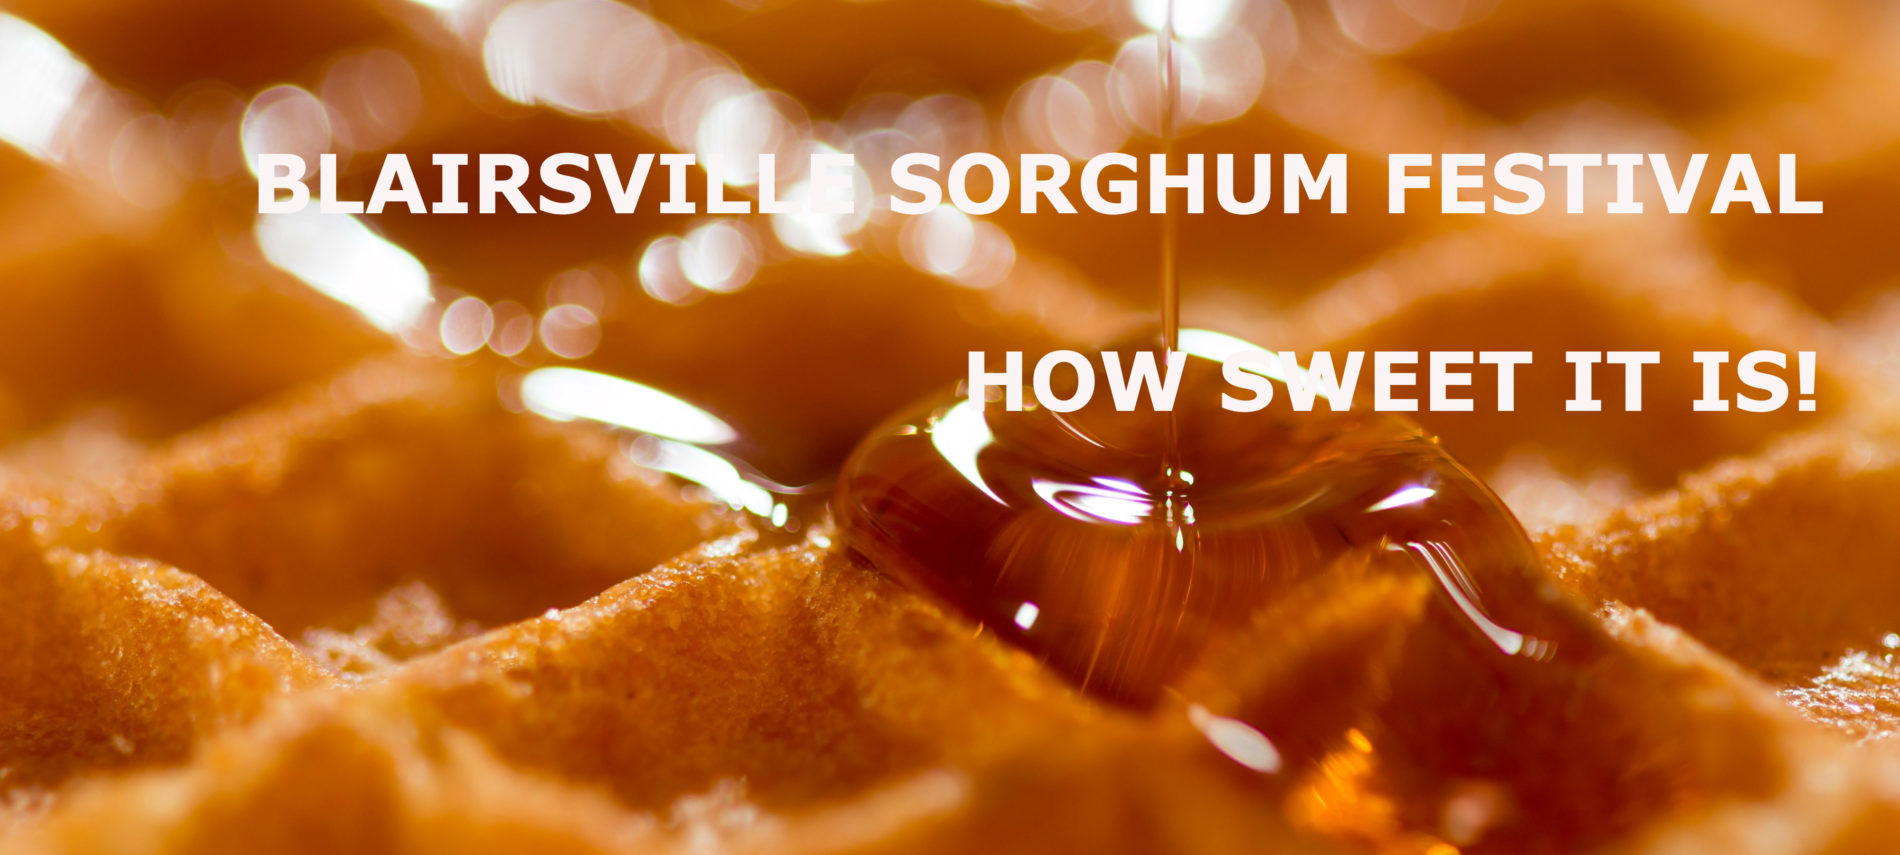 Golden syrup pouring in a thin stream onto a crisp waffle. Title: Blairsville Sorghum Festival. How Sweet It is!